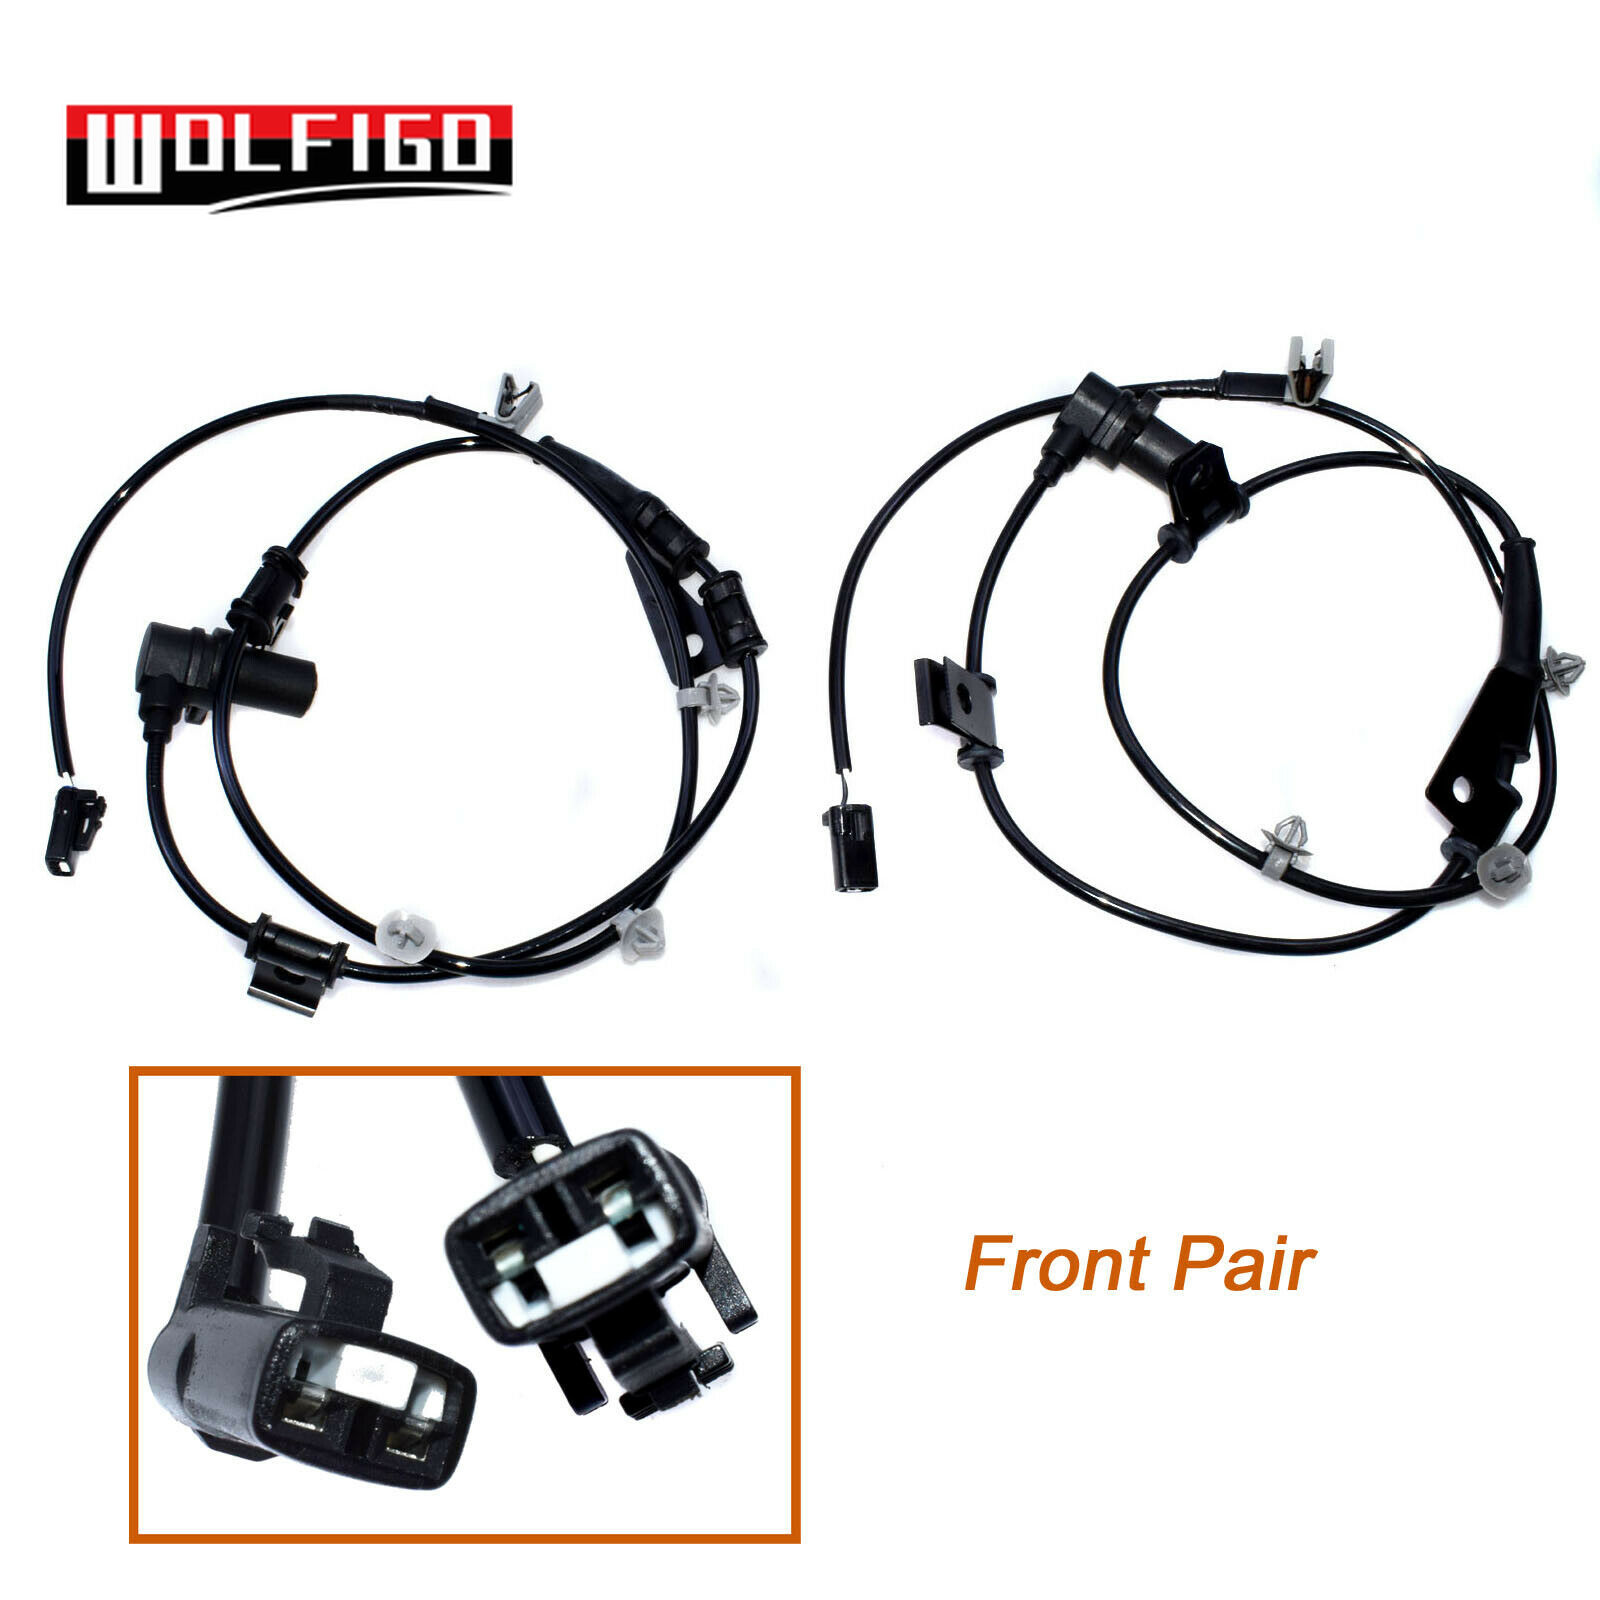 2 Pieces ABS Speed Sensors for Hyundai Santa Fe 2001-2006 Front Left and Right